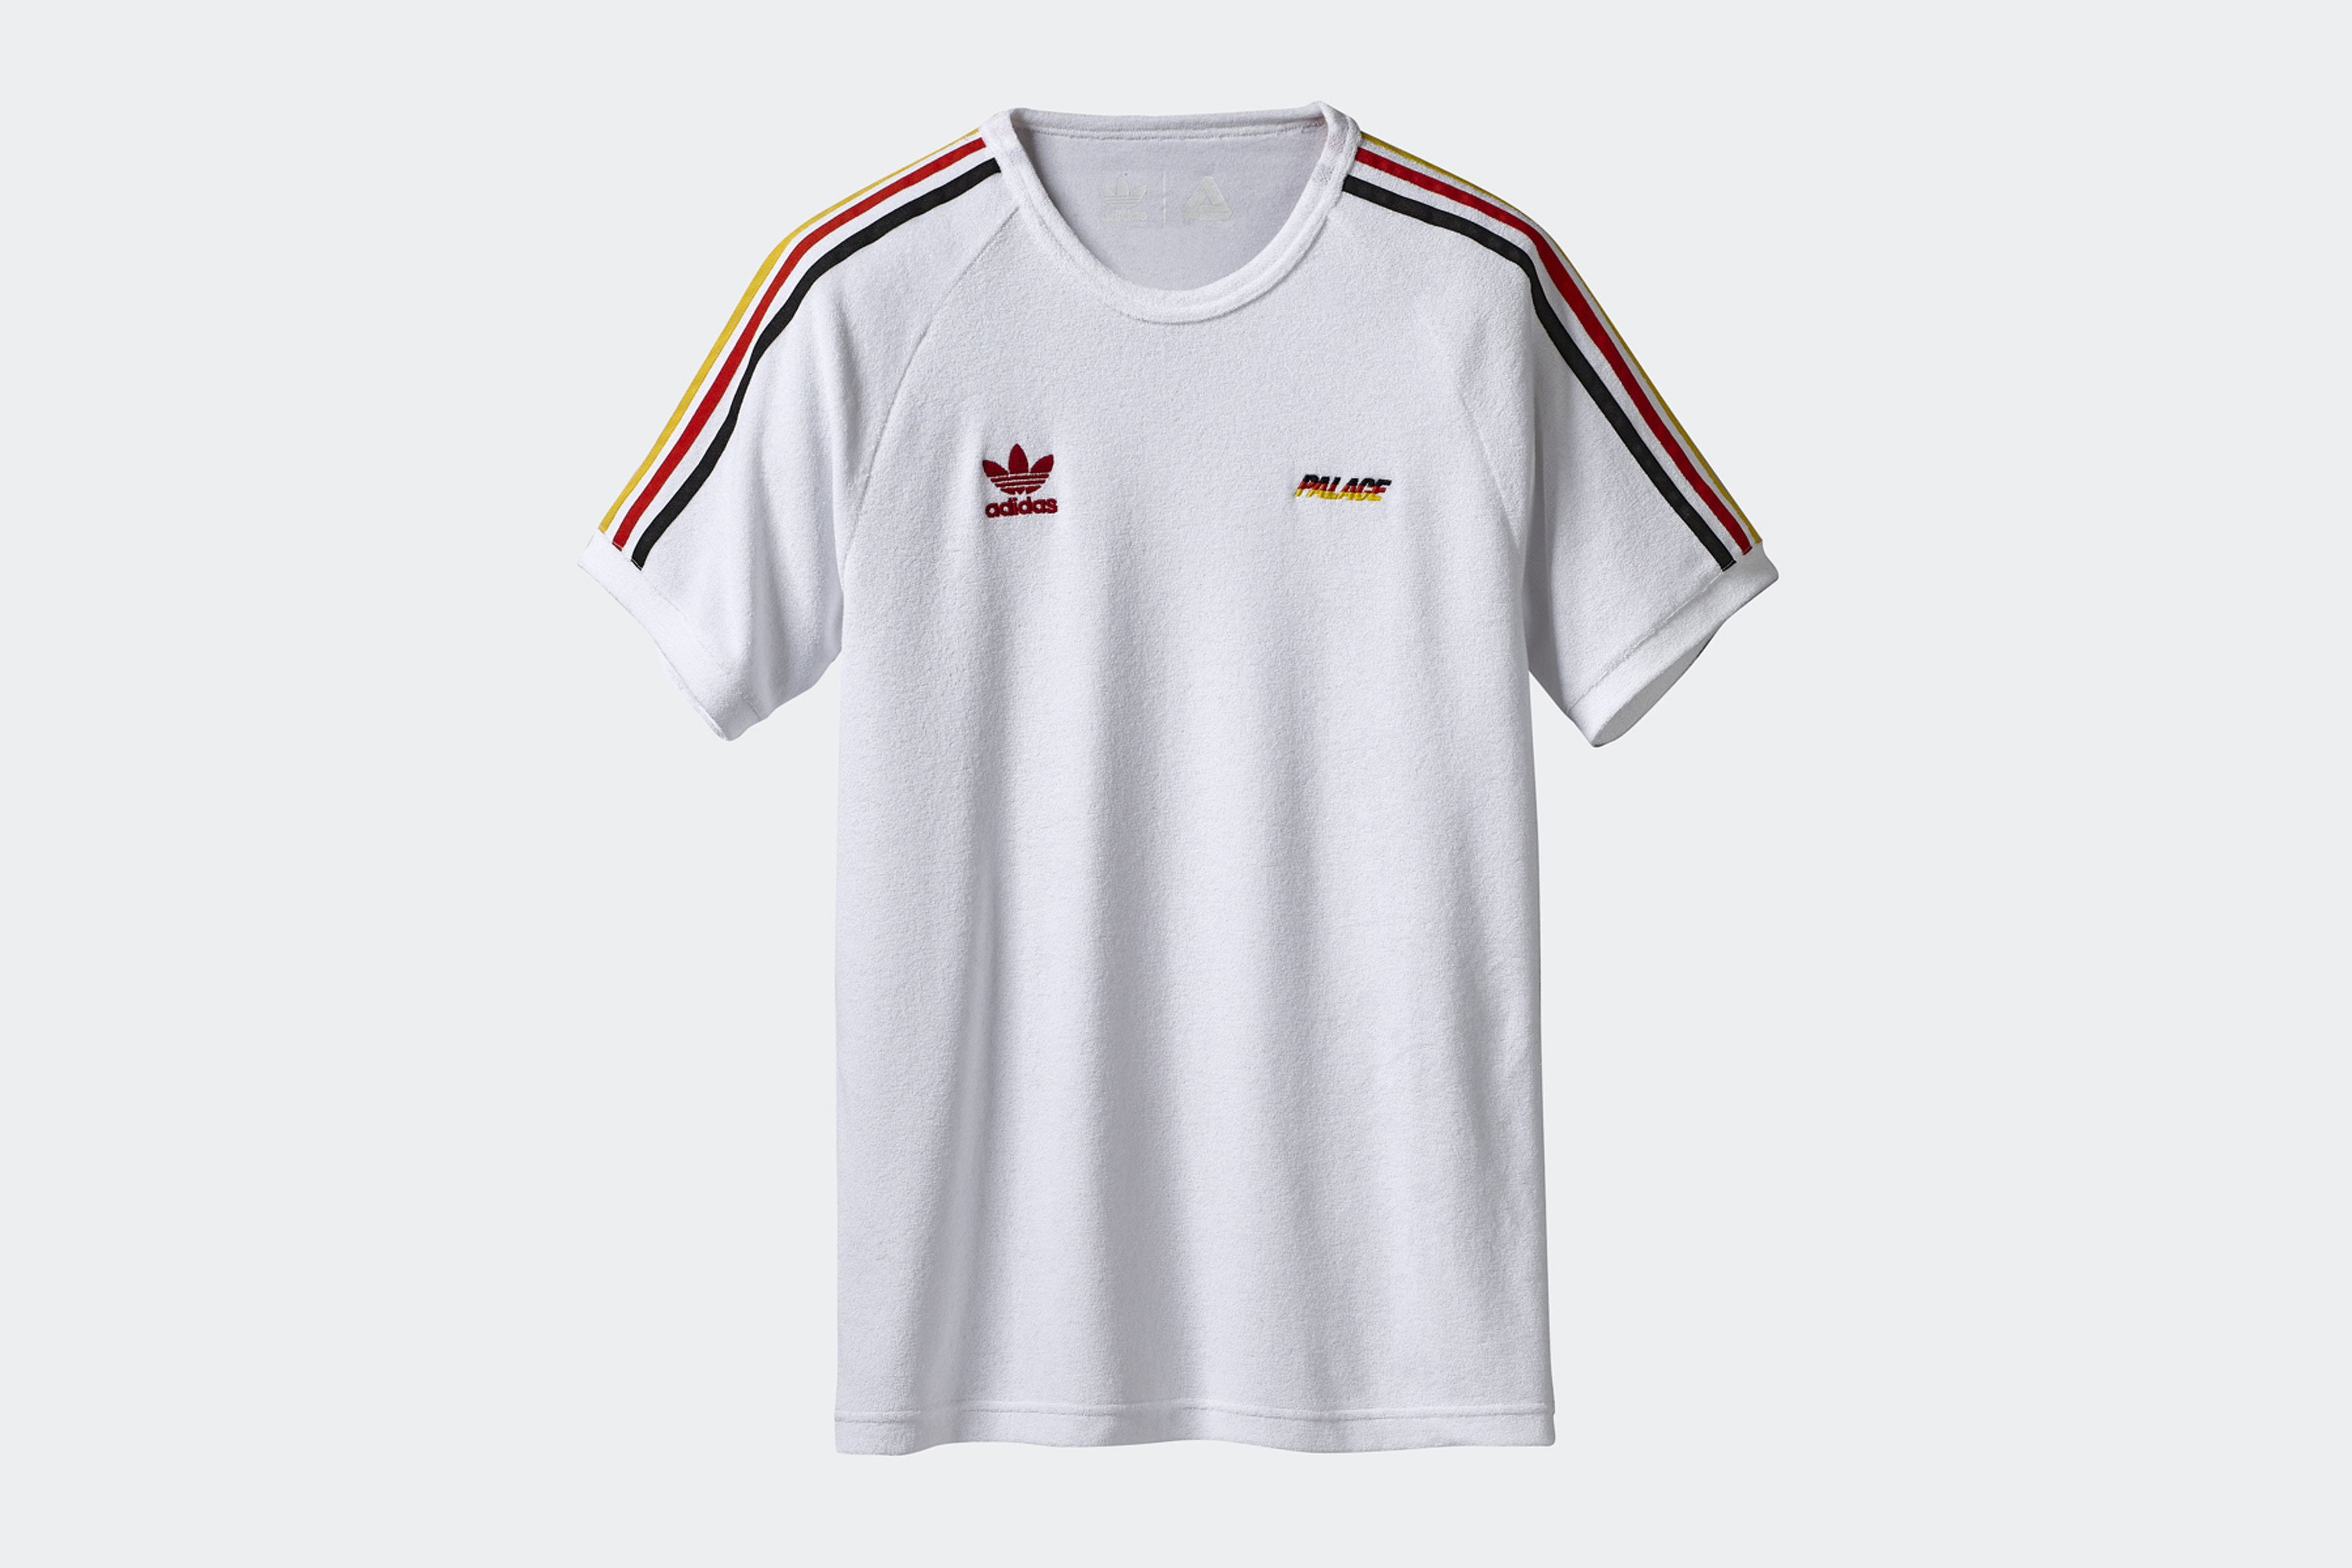 new styles d572a eac56 Palace x adidas Originals Summer 2018 Collection with World Cup Vibes - EU  Kicks  Sneaker Magazine